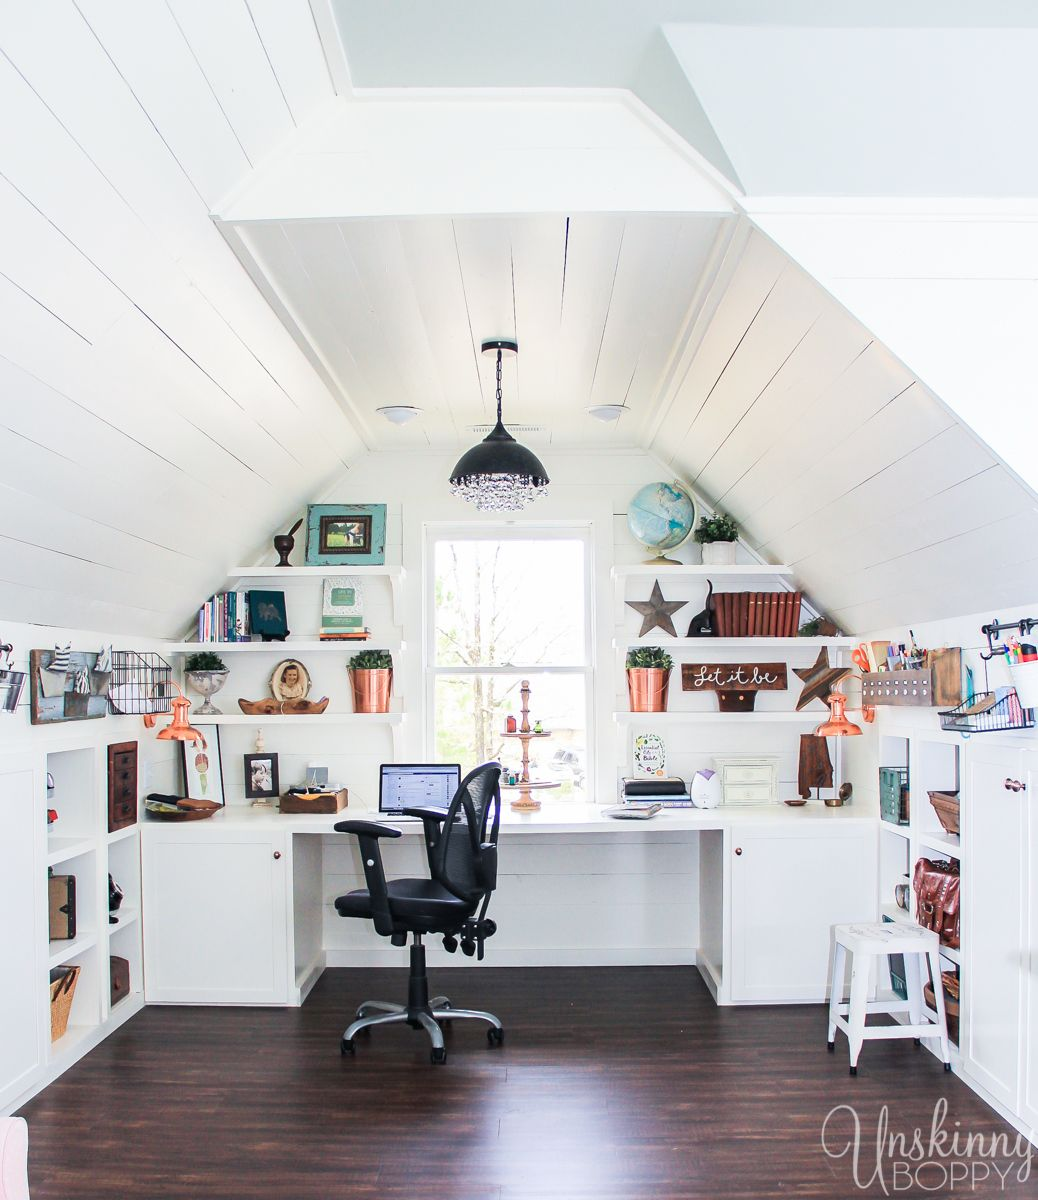 Check Out This Amazing Attic Renovation Before And After